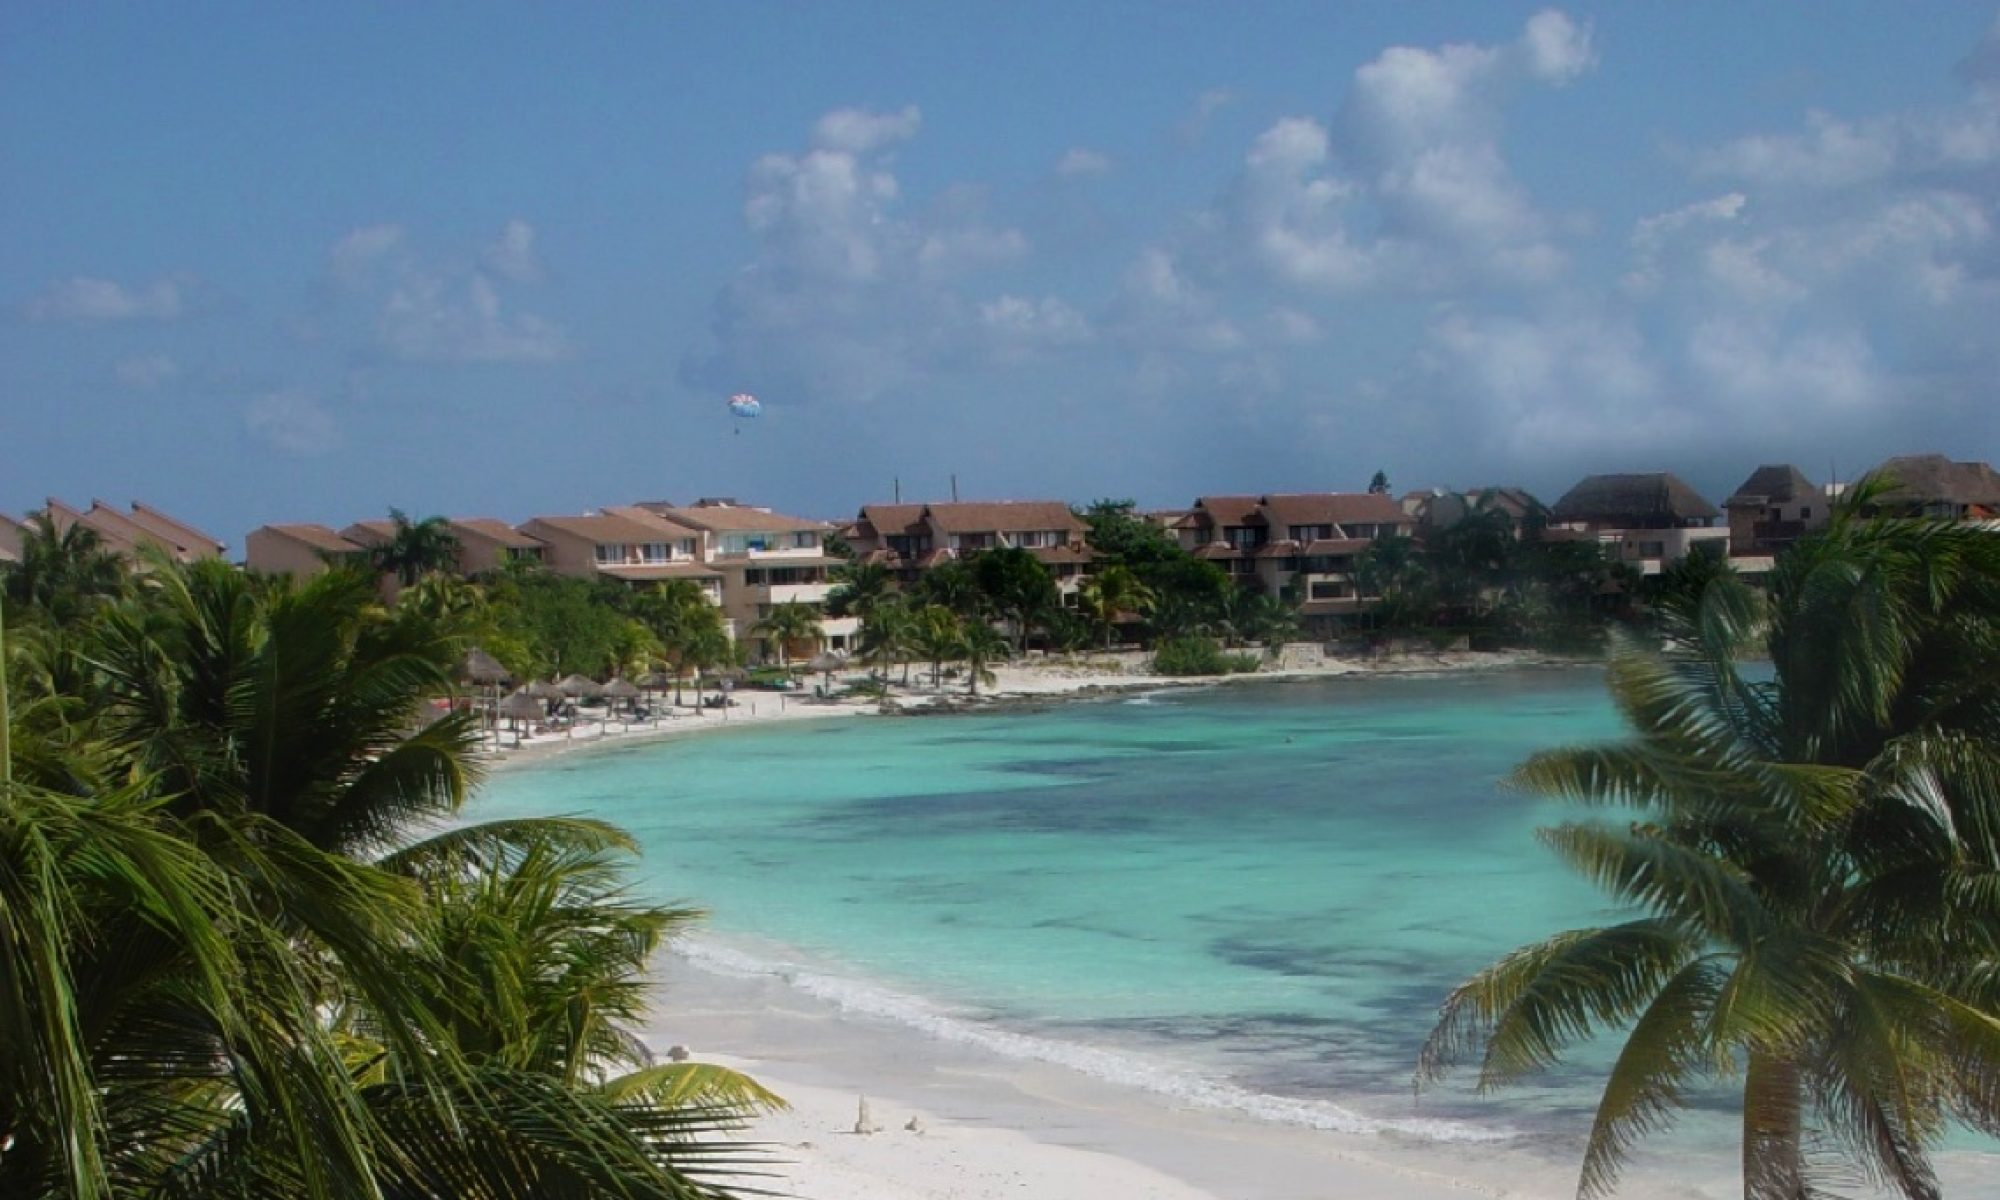 Puerto Aventuras Today